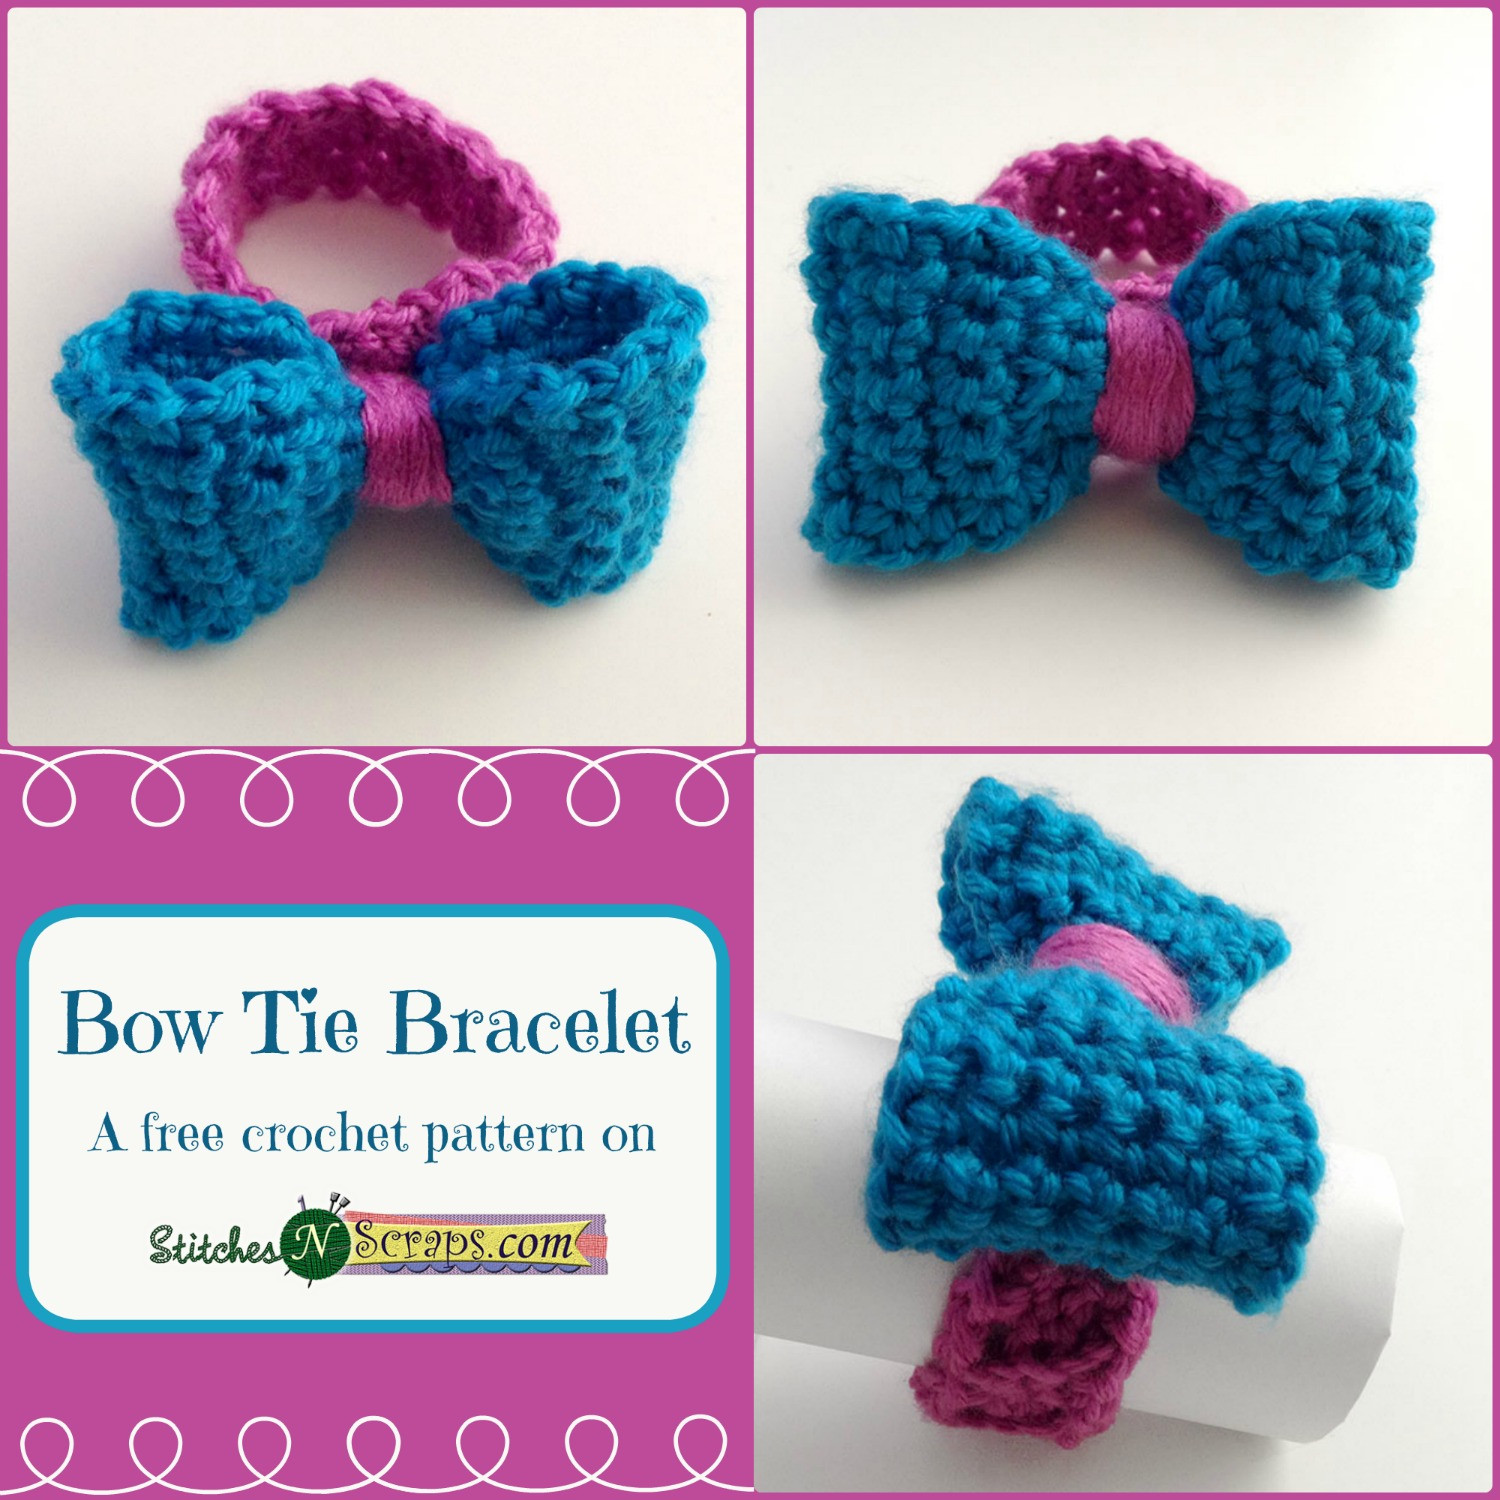 Crochet Bow Tie Awesome Free Pattern Bow Tie Bracelet Stitches N Scraps Of Brilliant 40 Pics Crochet Bow Tie